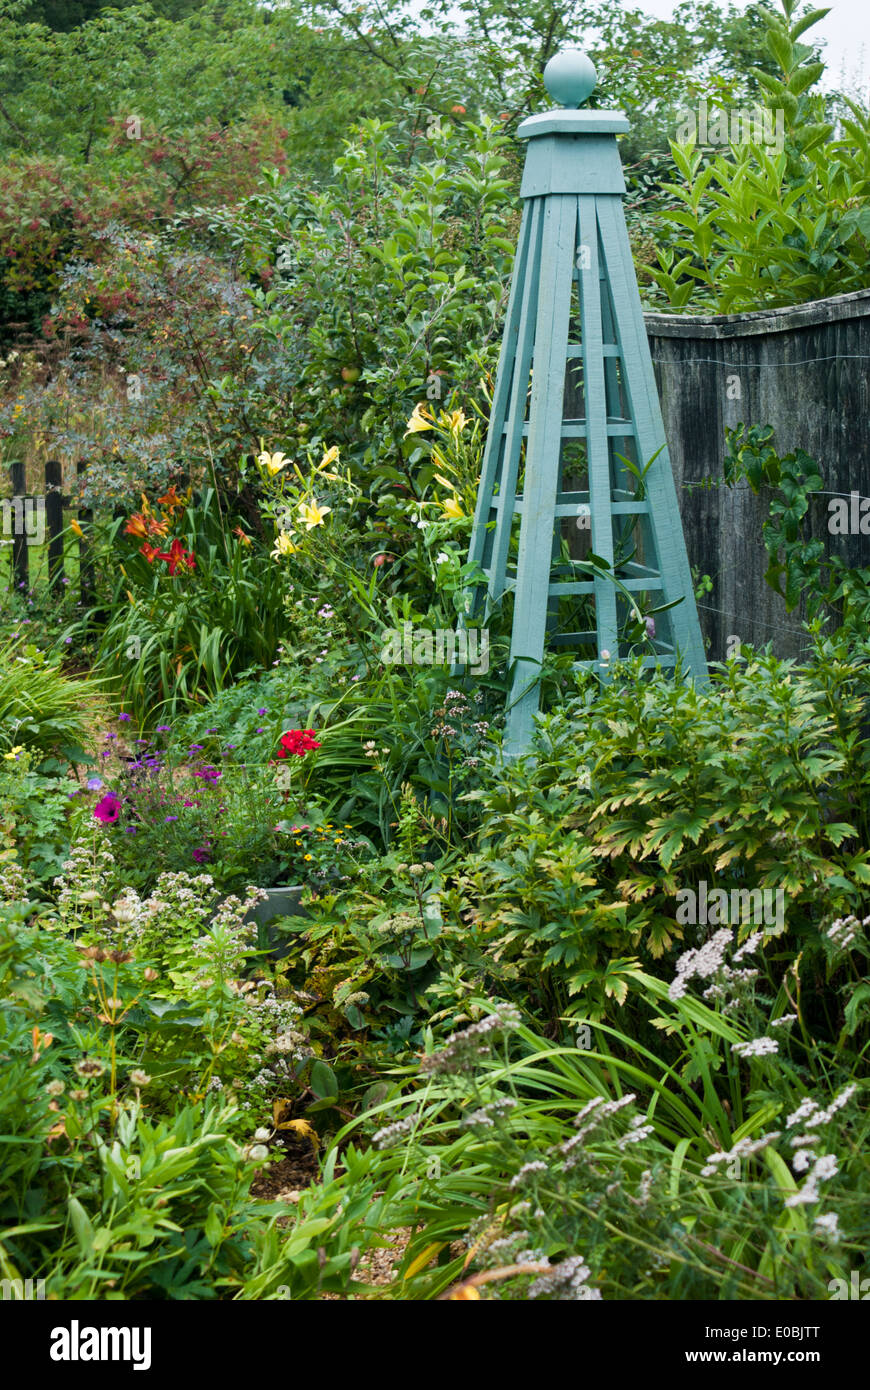 How to make a garden obelisk -  Garden Design With Garden Obelisk Stock Photos Uamp Garden Obelisk Stock Images Alamy With Gardens From